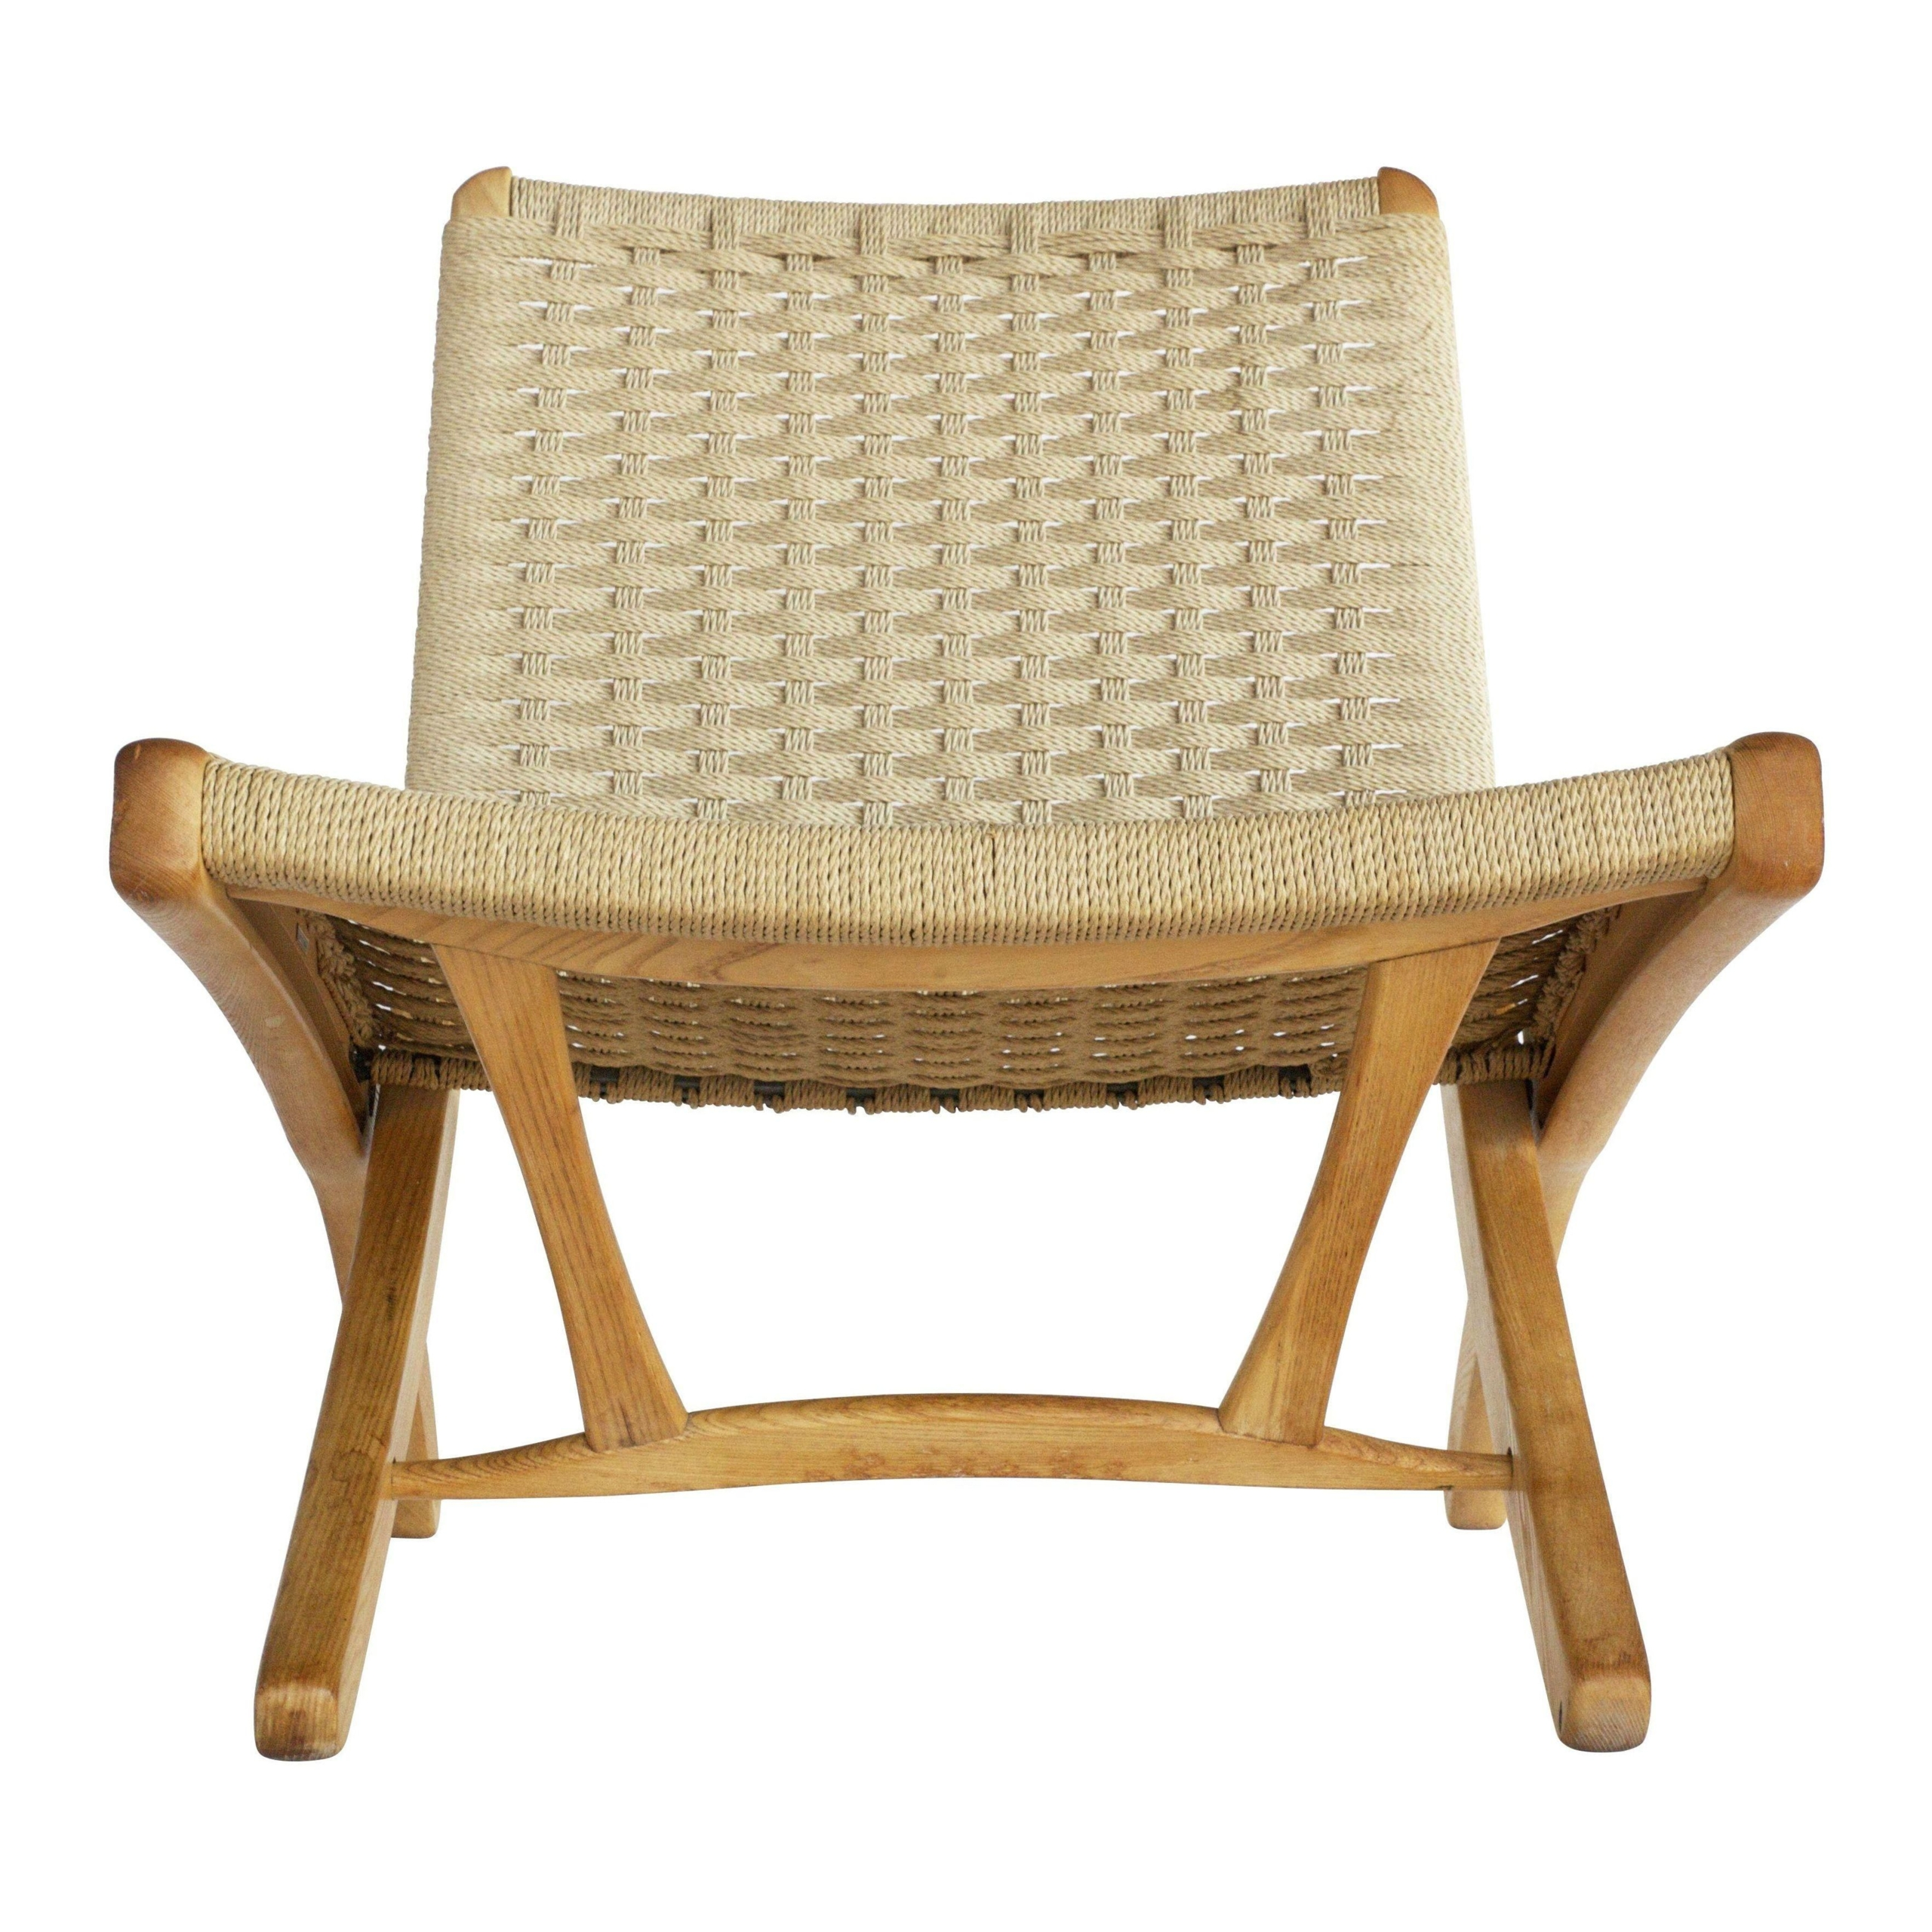 Genial Traditional Japanese Chair